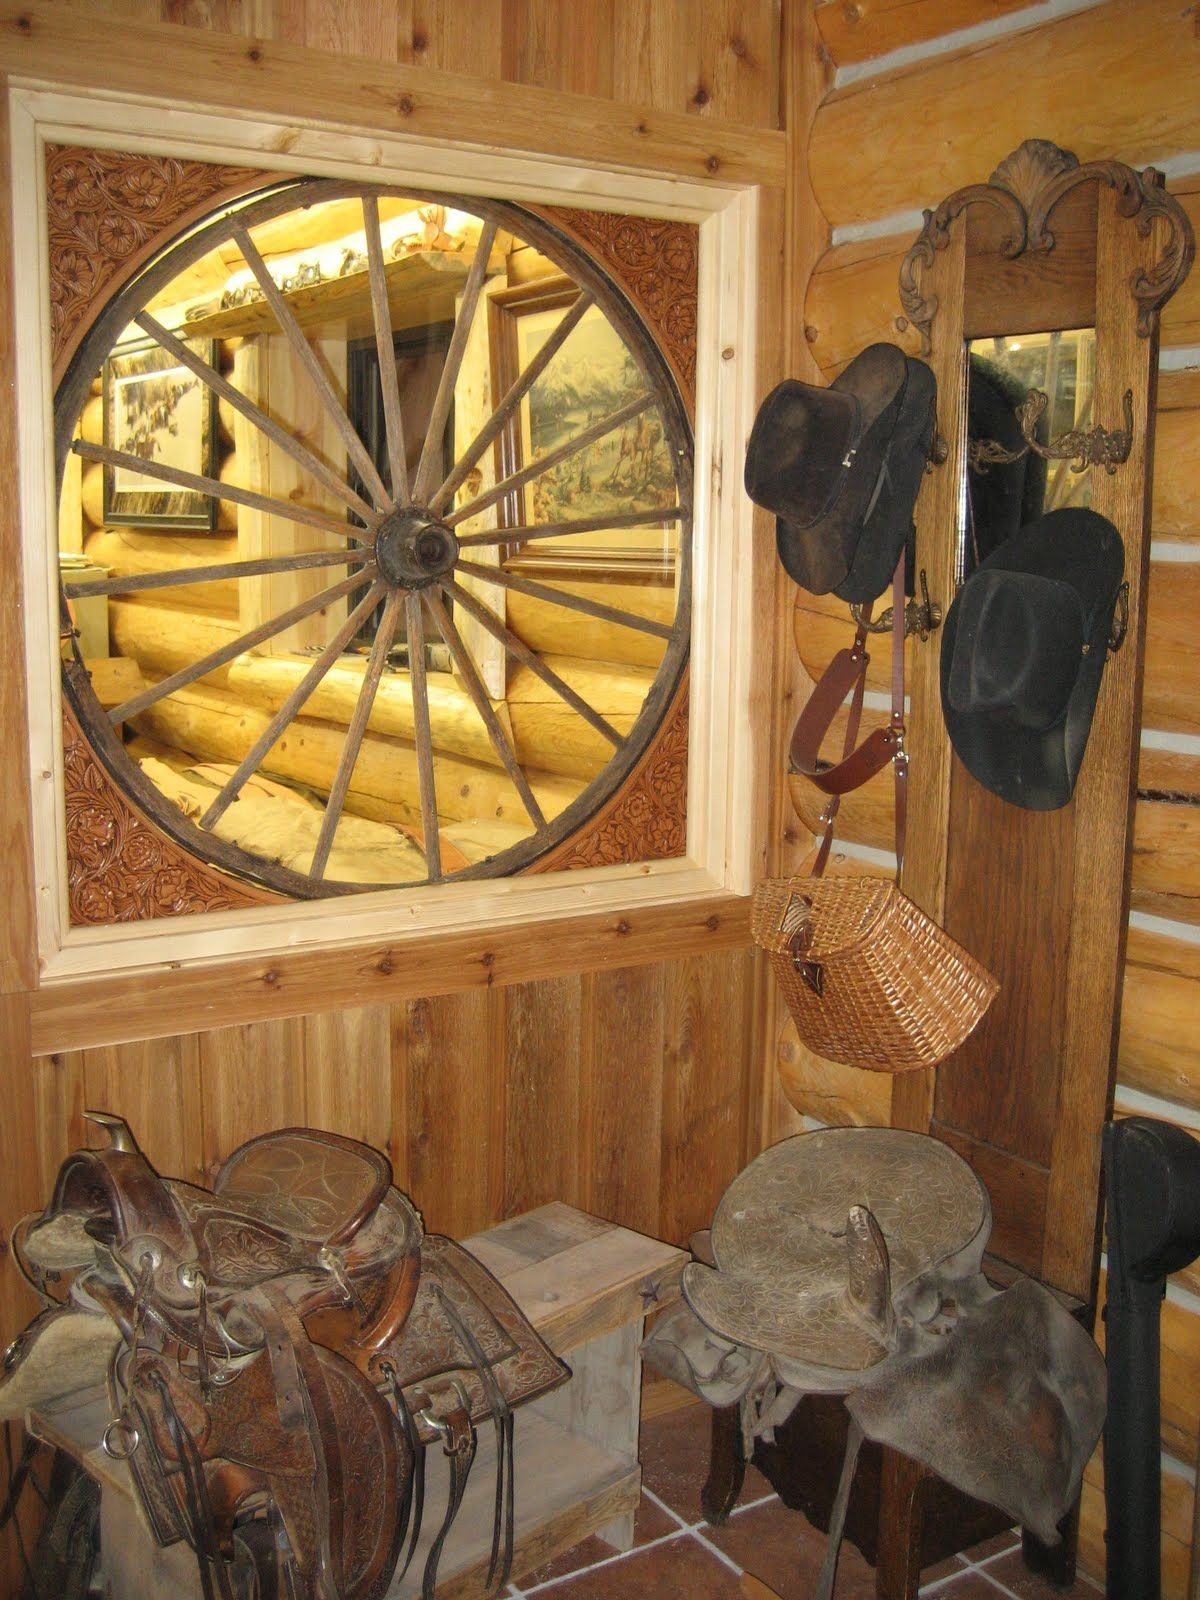 Rodeo tales gypsy trails ranch house style a saddle makers home rodeo tales gypsy trails ranch house style a saddle makers home decor teraionfo